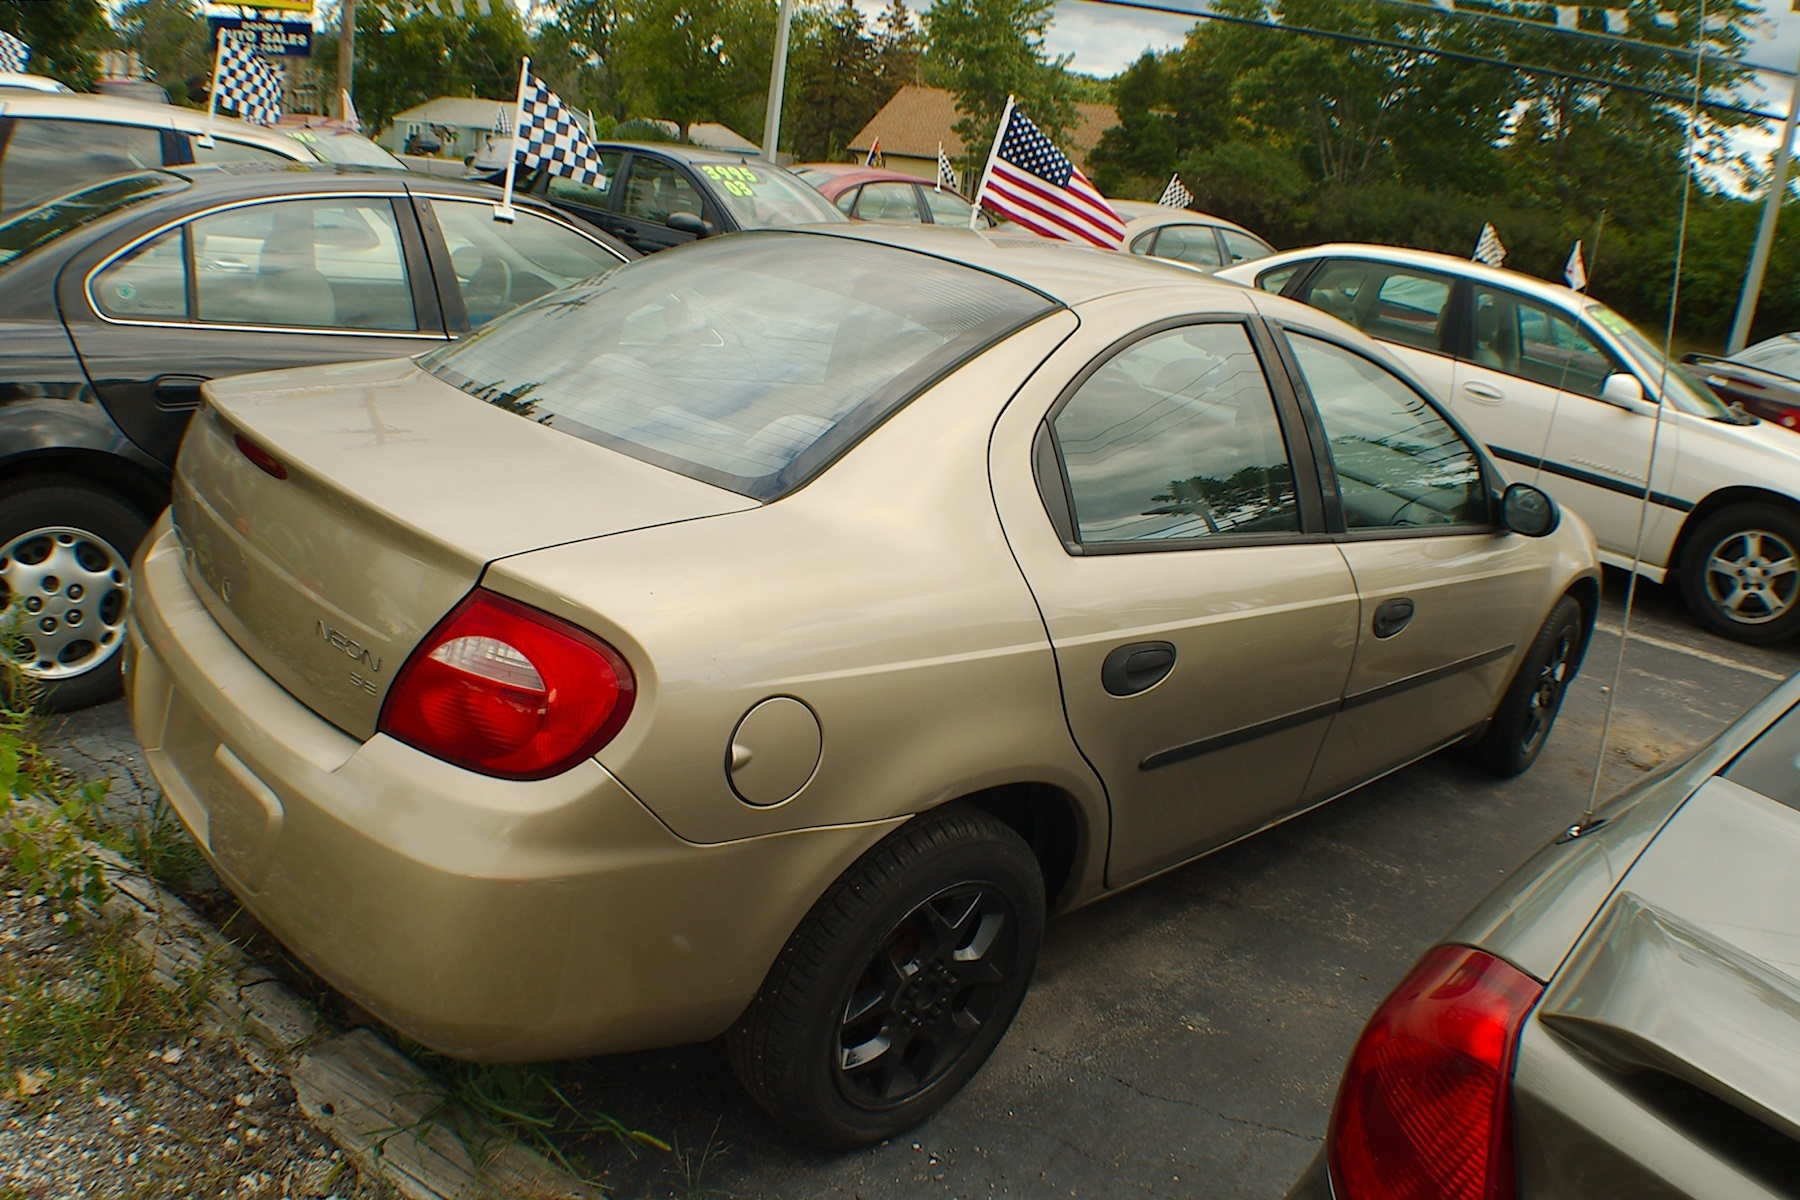 2003 Dodge Neon Pewter Sedan Used Car Sale Bannockburn Barrington Beach Park